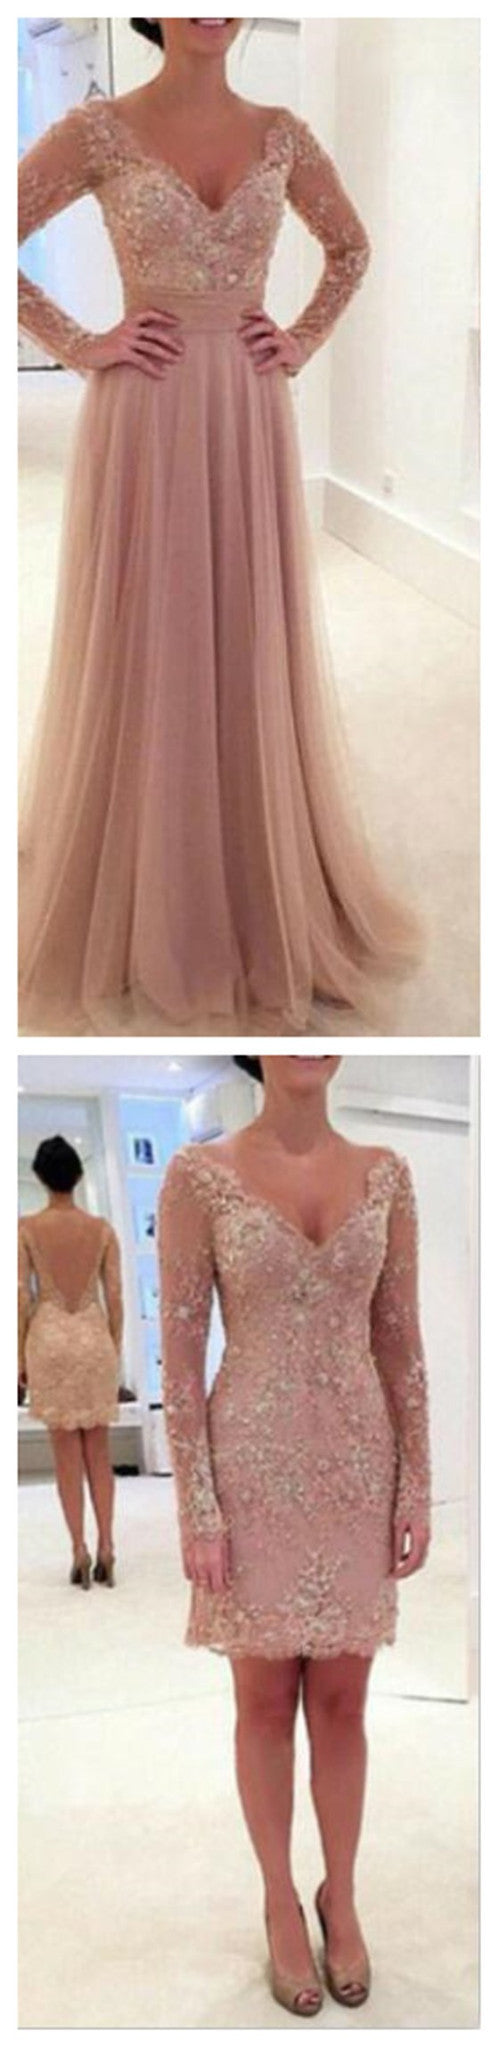 2 Pieces Long Sleeves Blush Pink Sexy Long Lace Prom Dresses, BG51137 - Bubble Gown